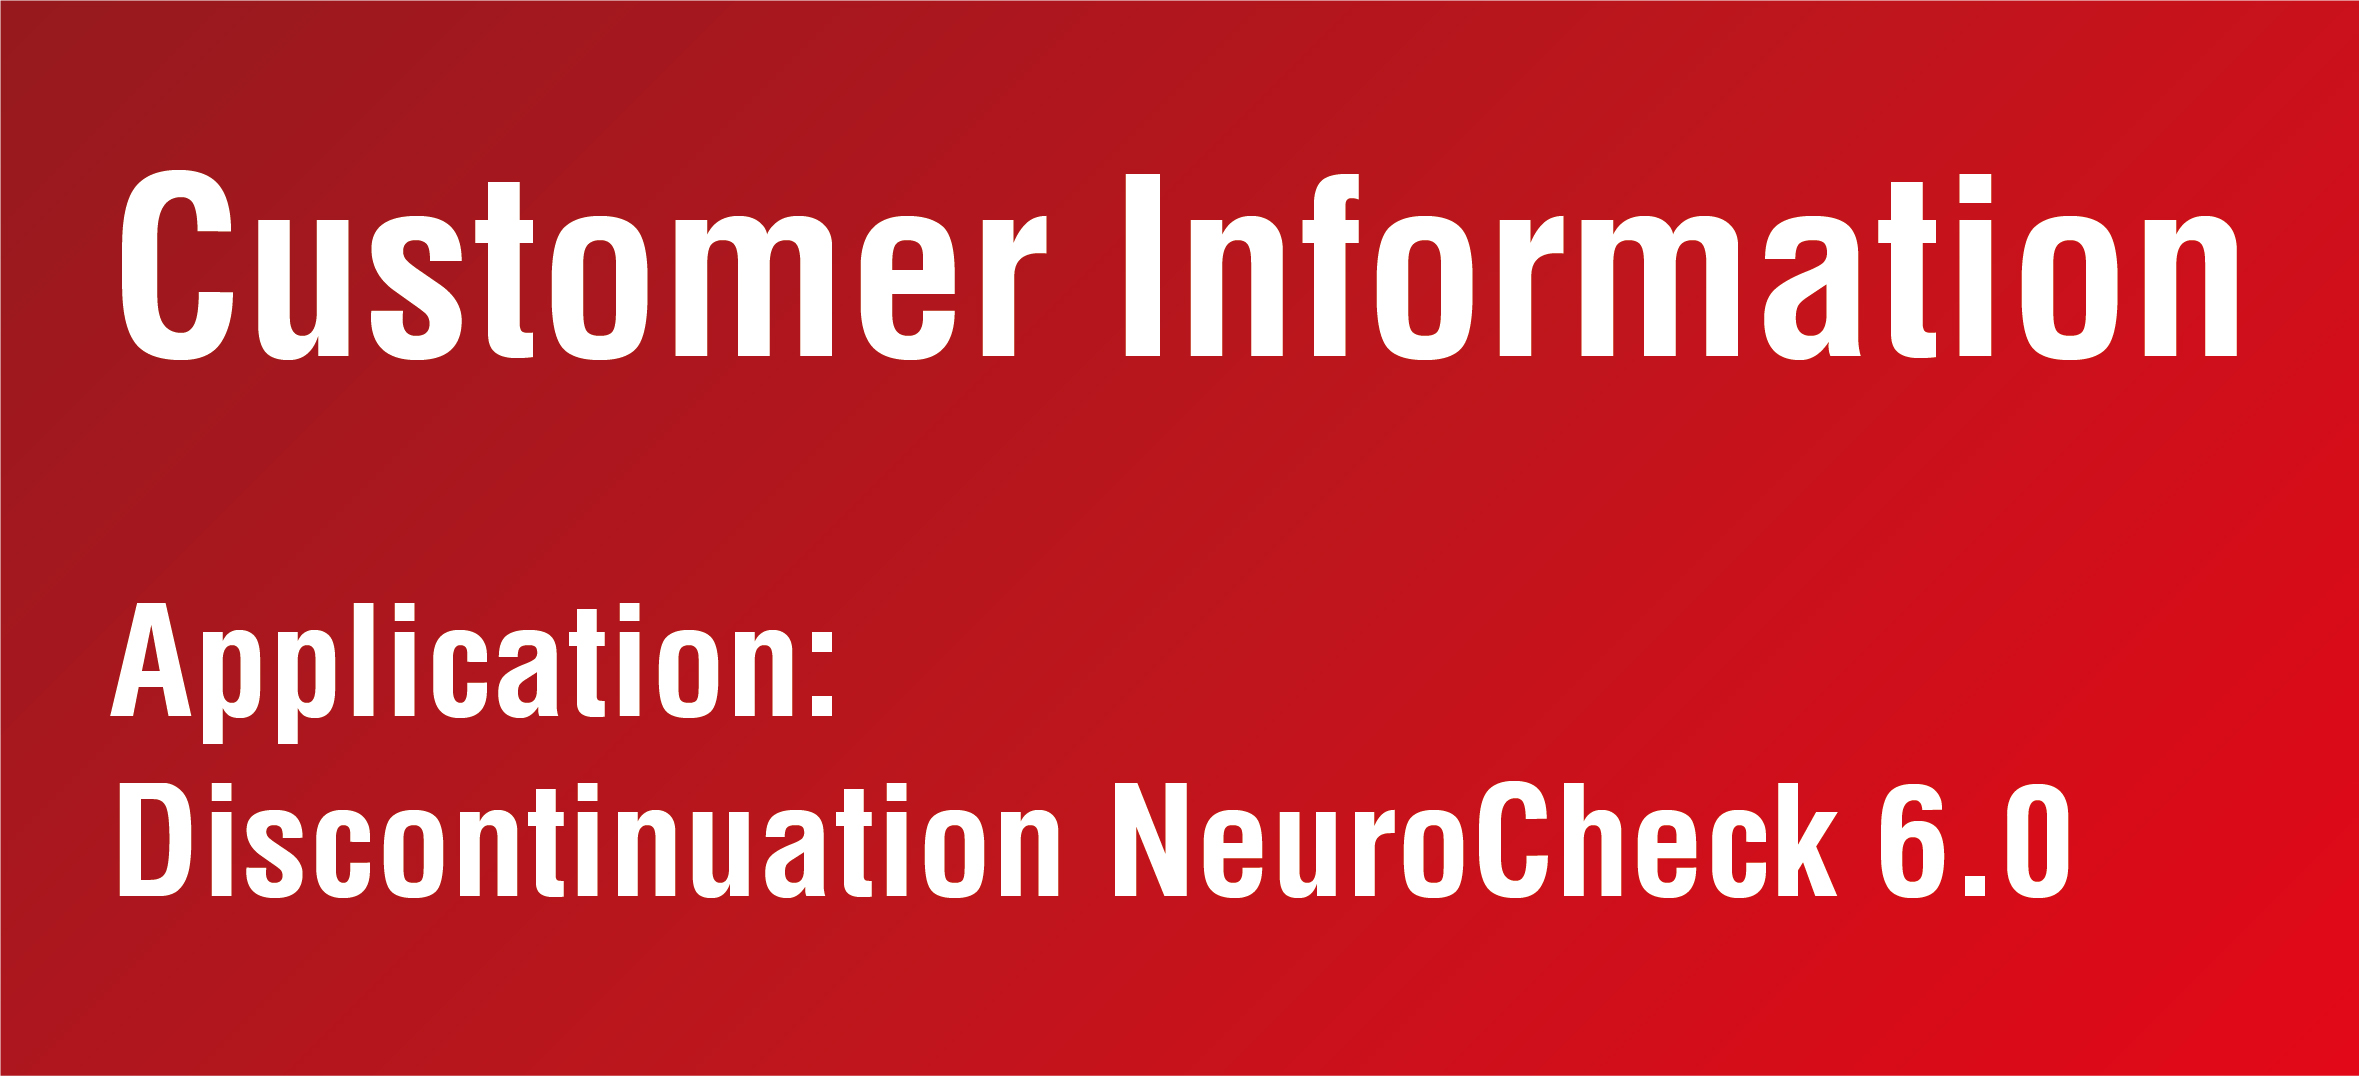 NeuroCheck Customer Information - Discontinuation NeuroCheck 6.0 (Image © NeuroCheck)